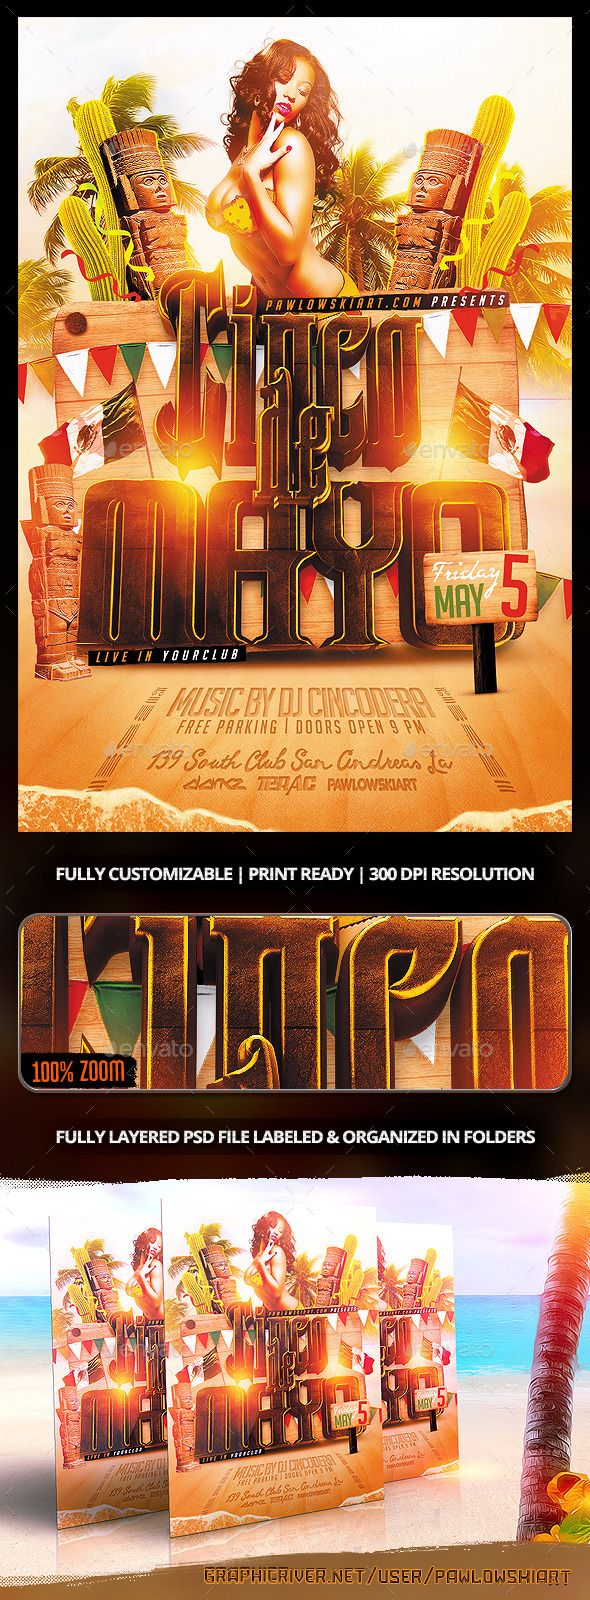 Cinco de Mayo v2 Flyer Template - Holidays Events